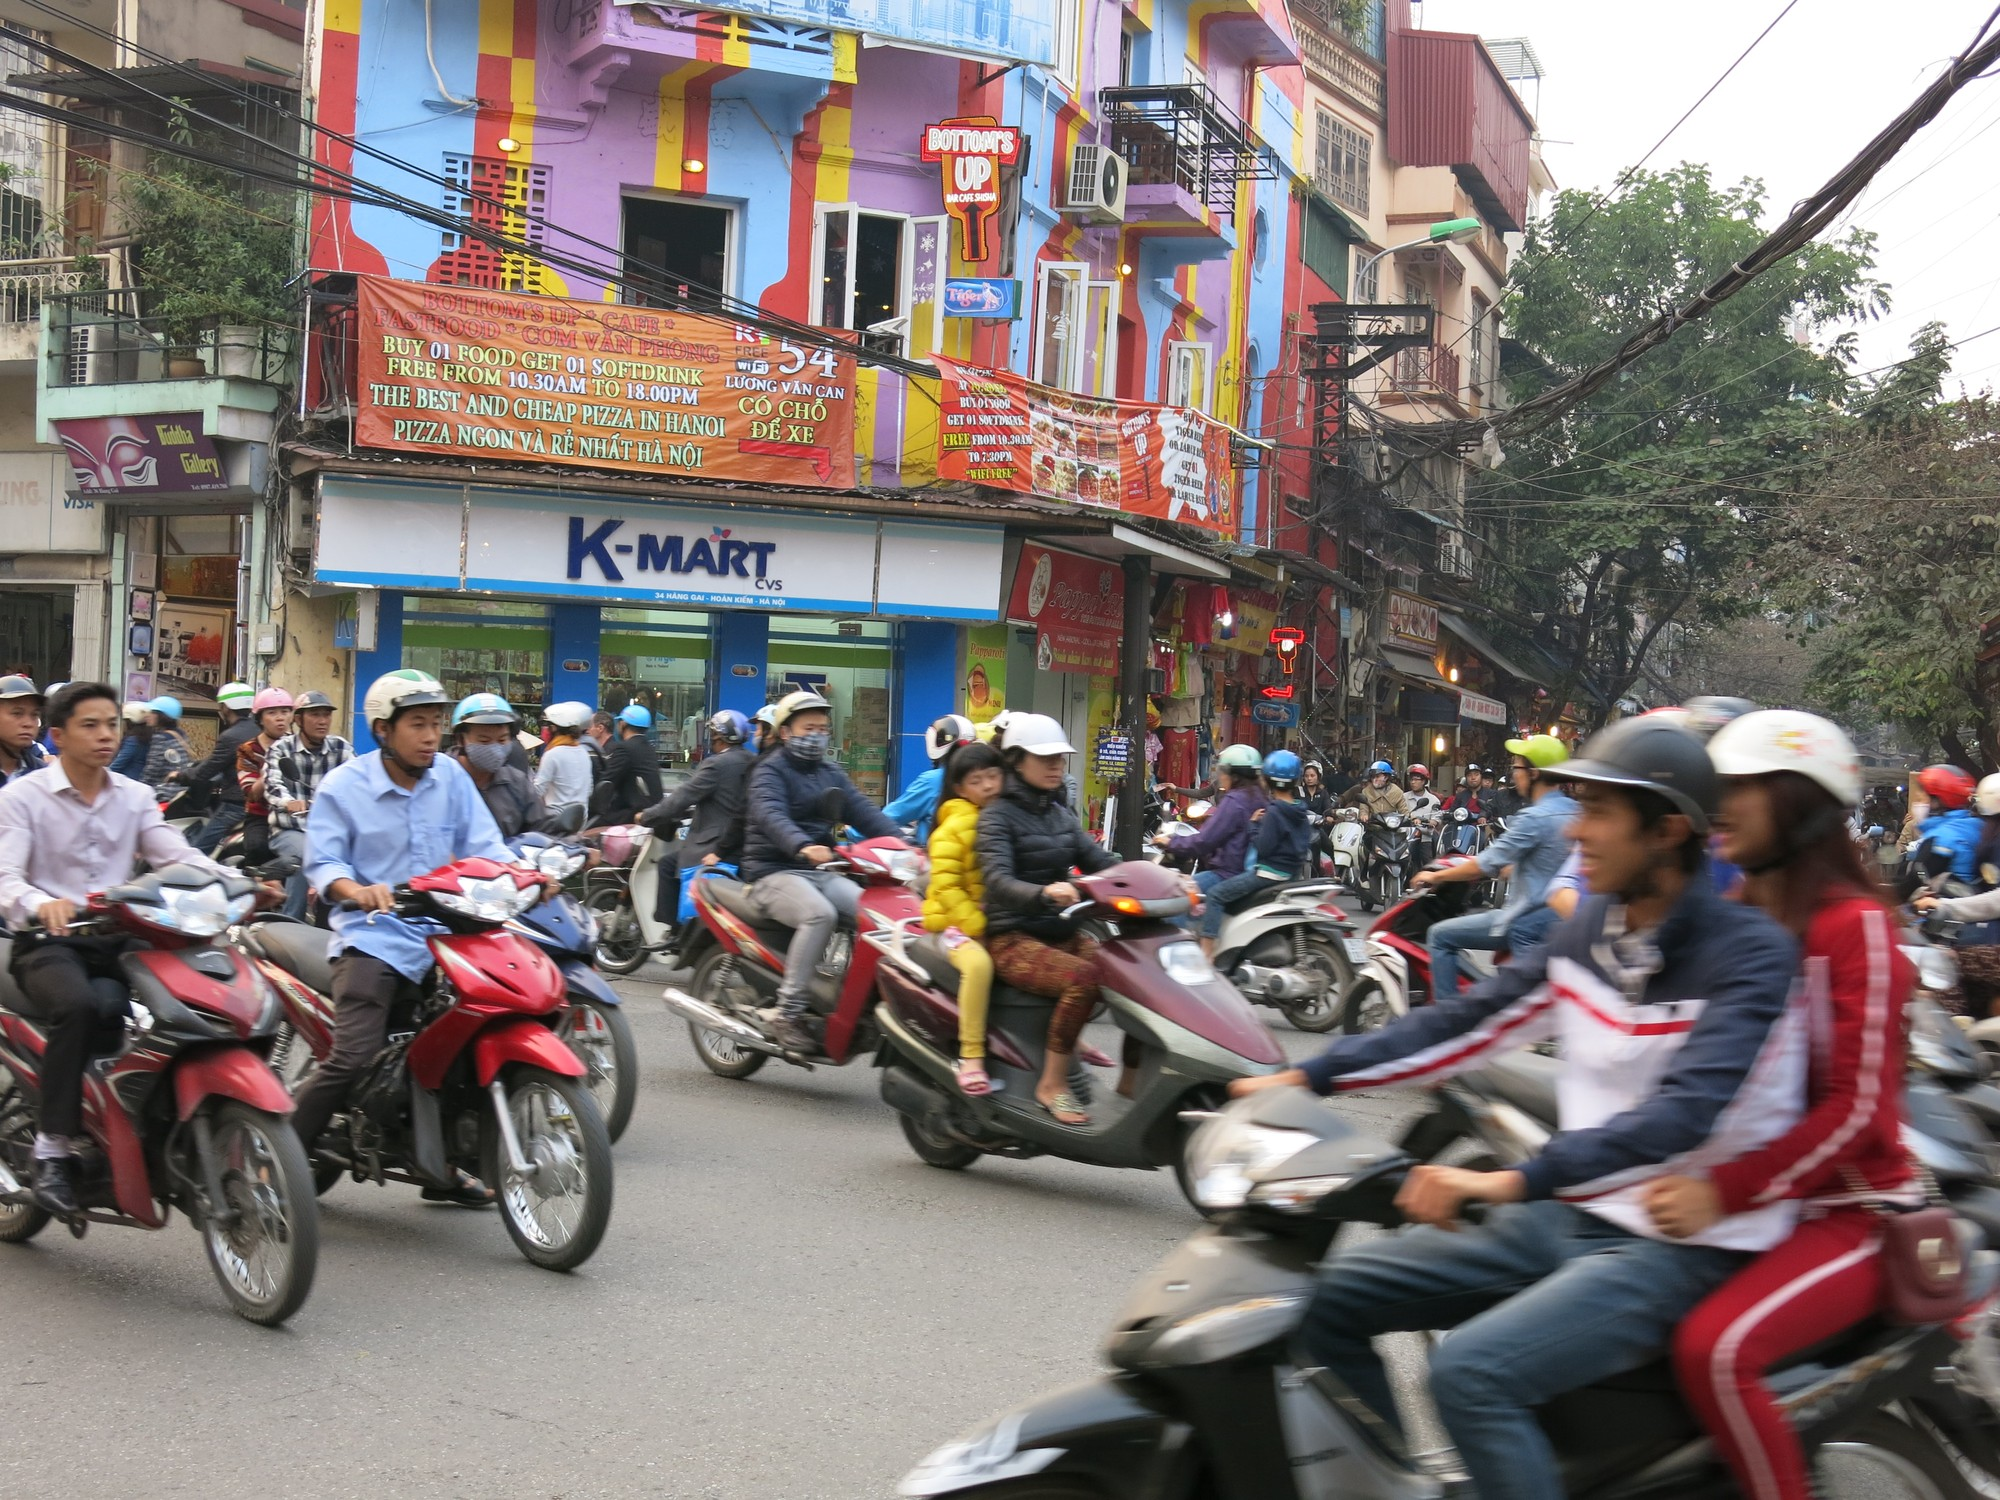 Crowds of motorbikes and mopeds on the street in Hanoi, Vietnam